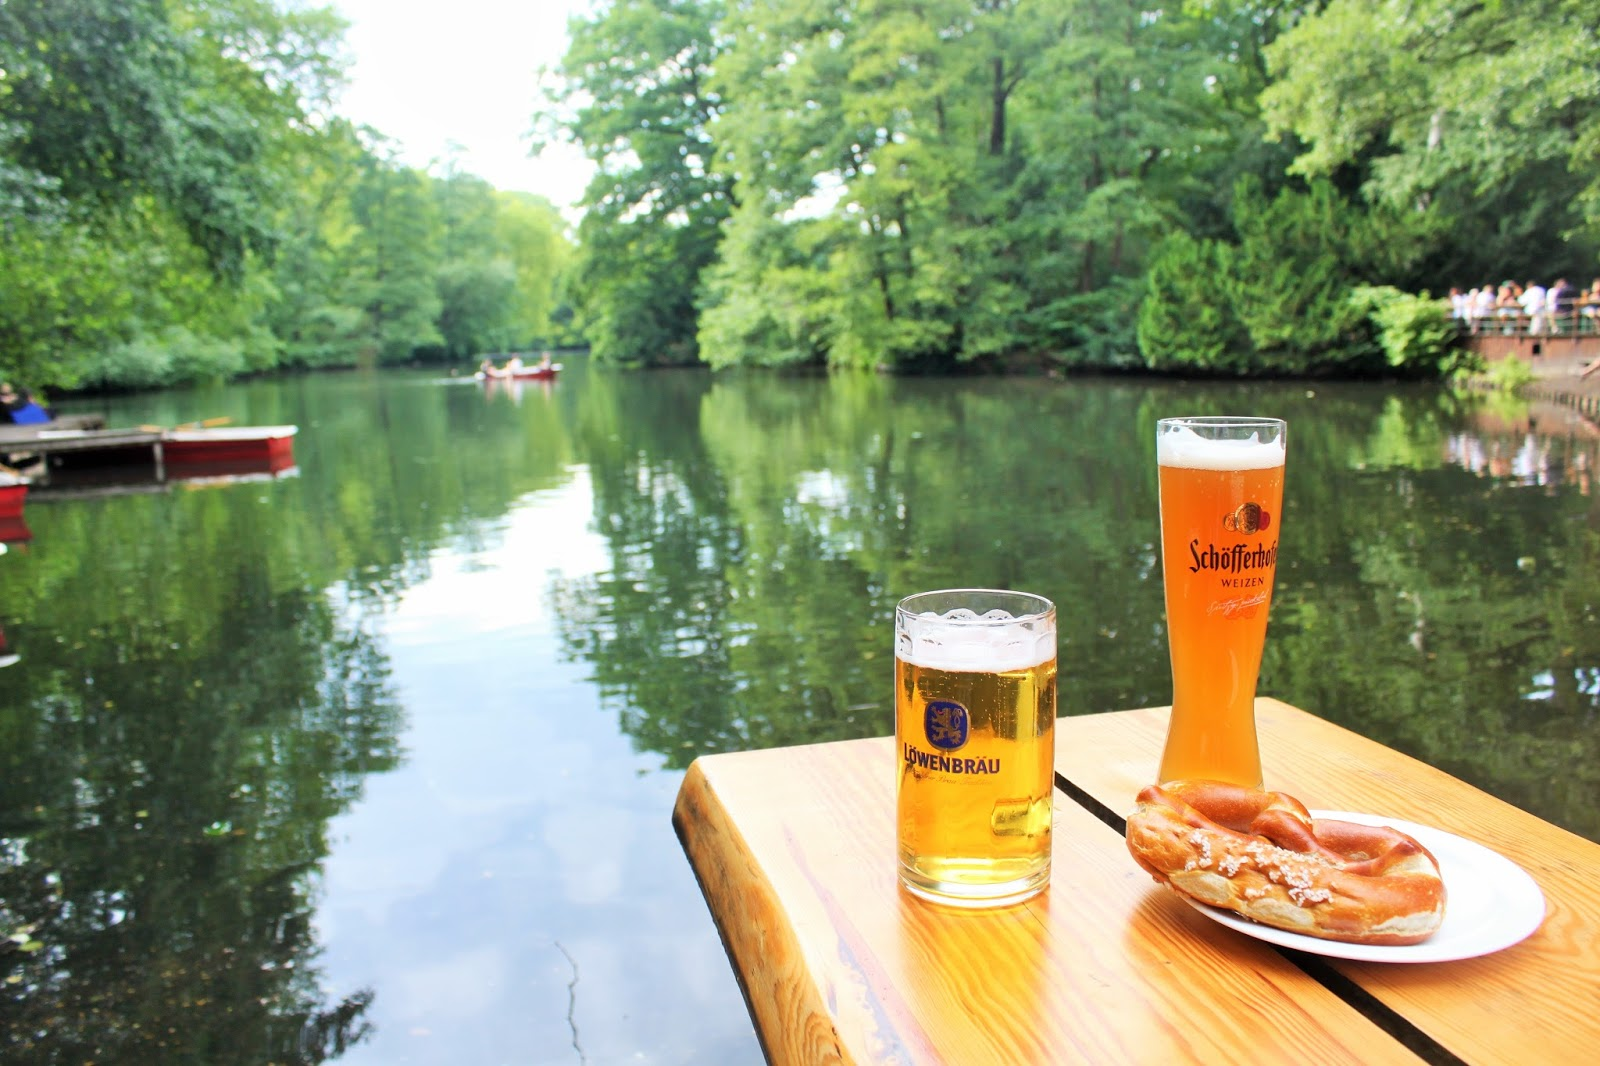 Beer and pretzels in Berlin…. But no clubs.